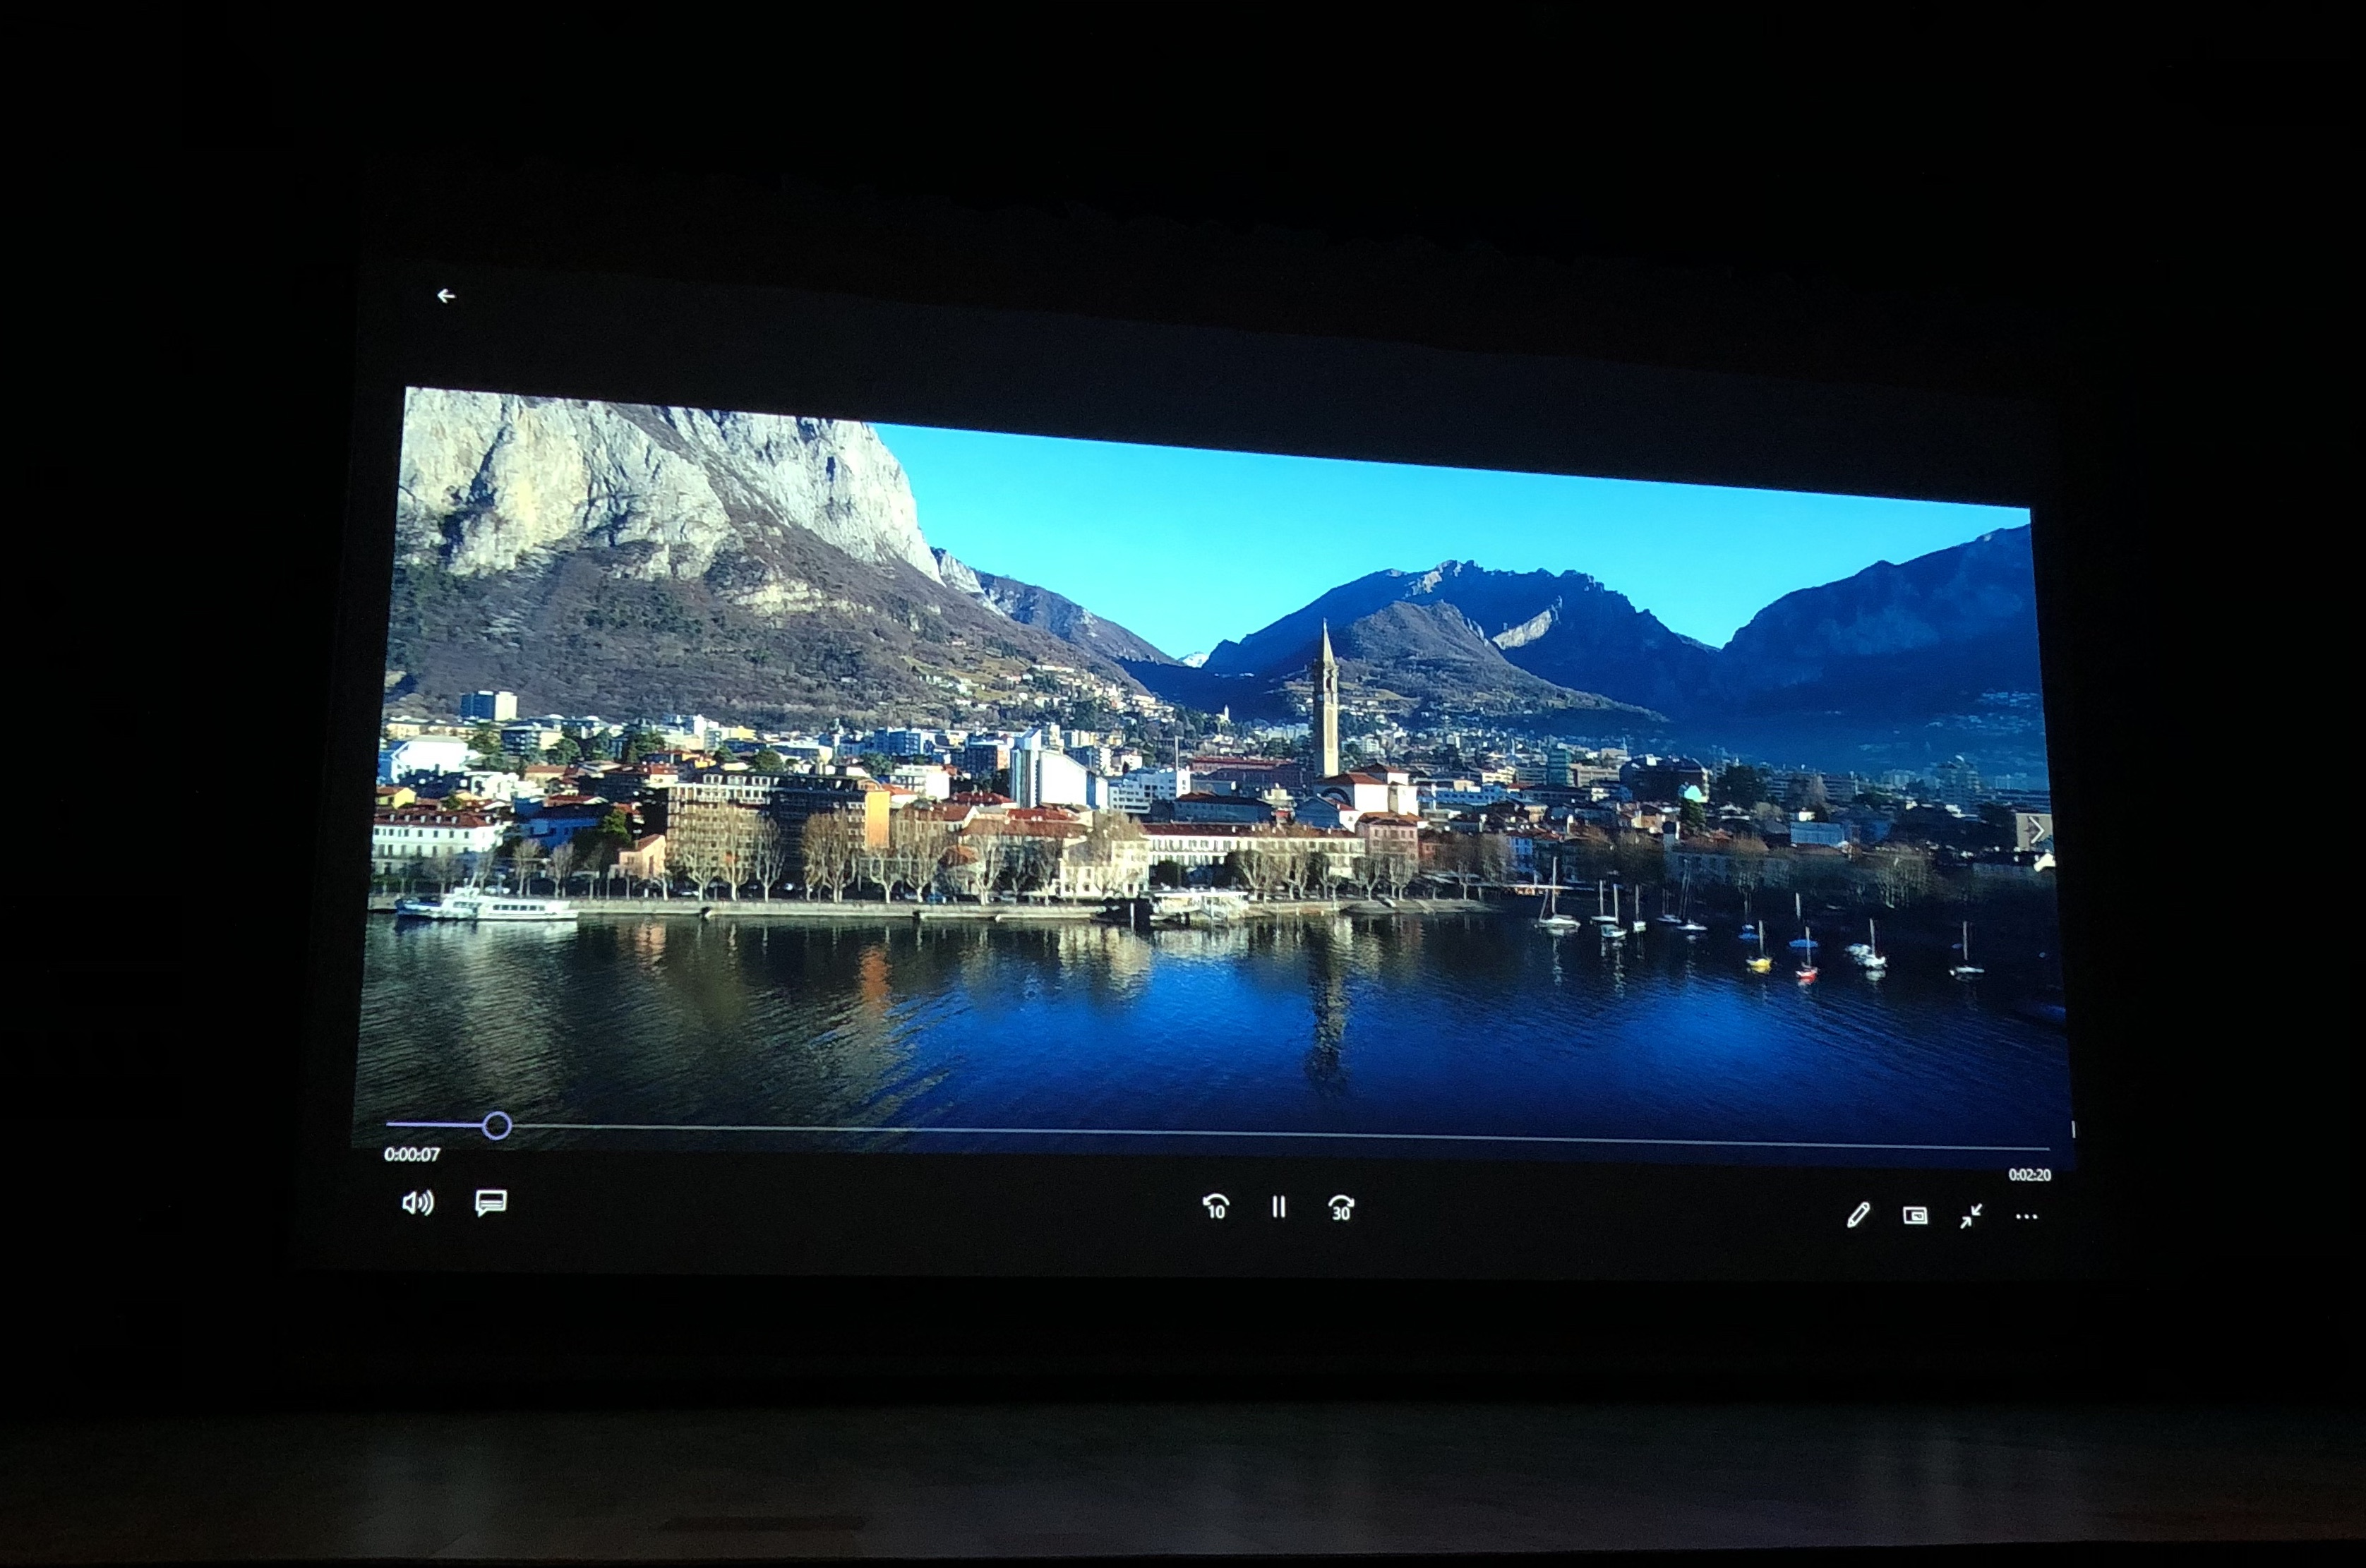 Lecco: A Movie Landscape